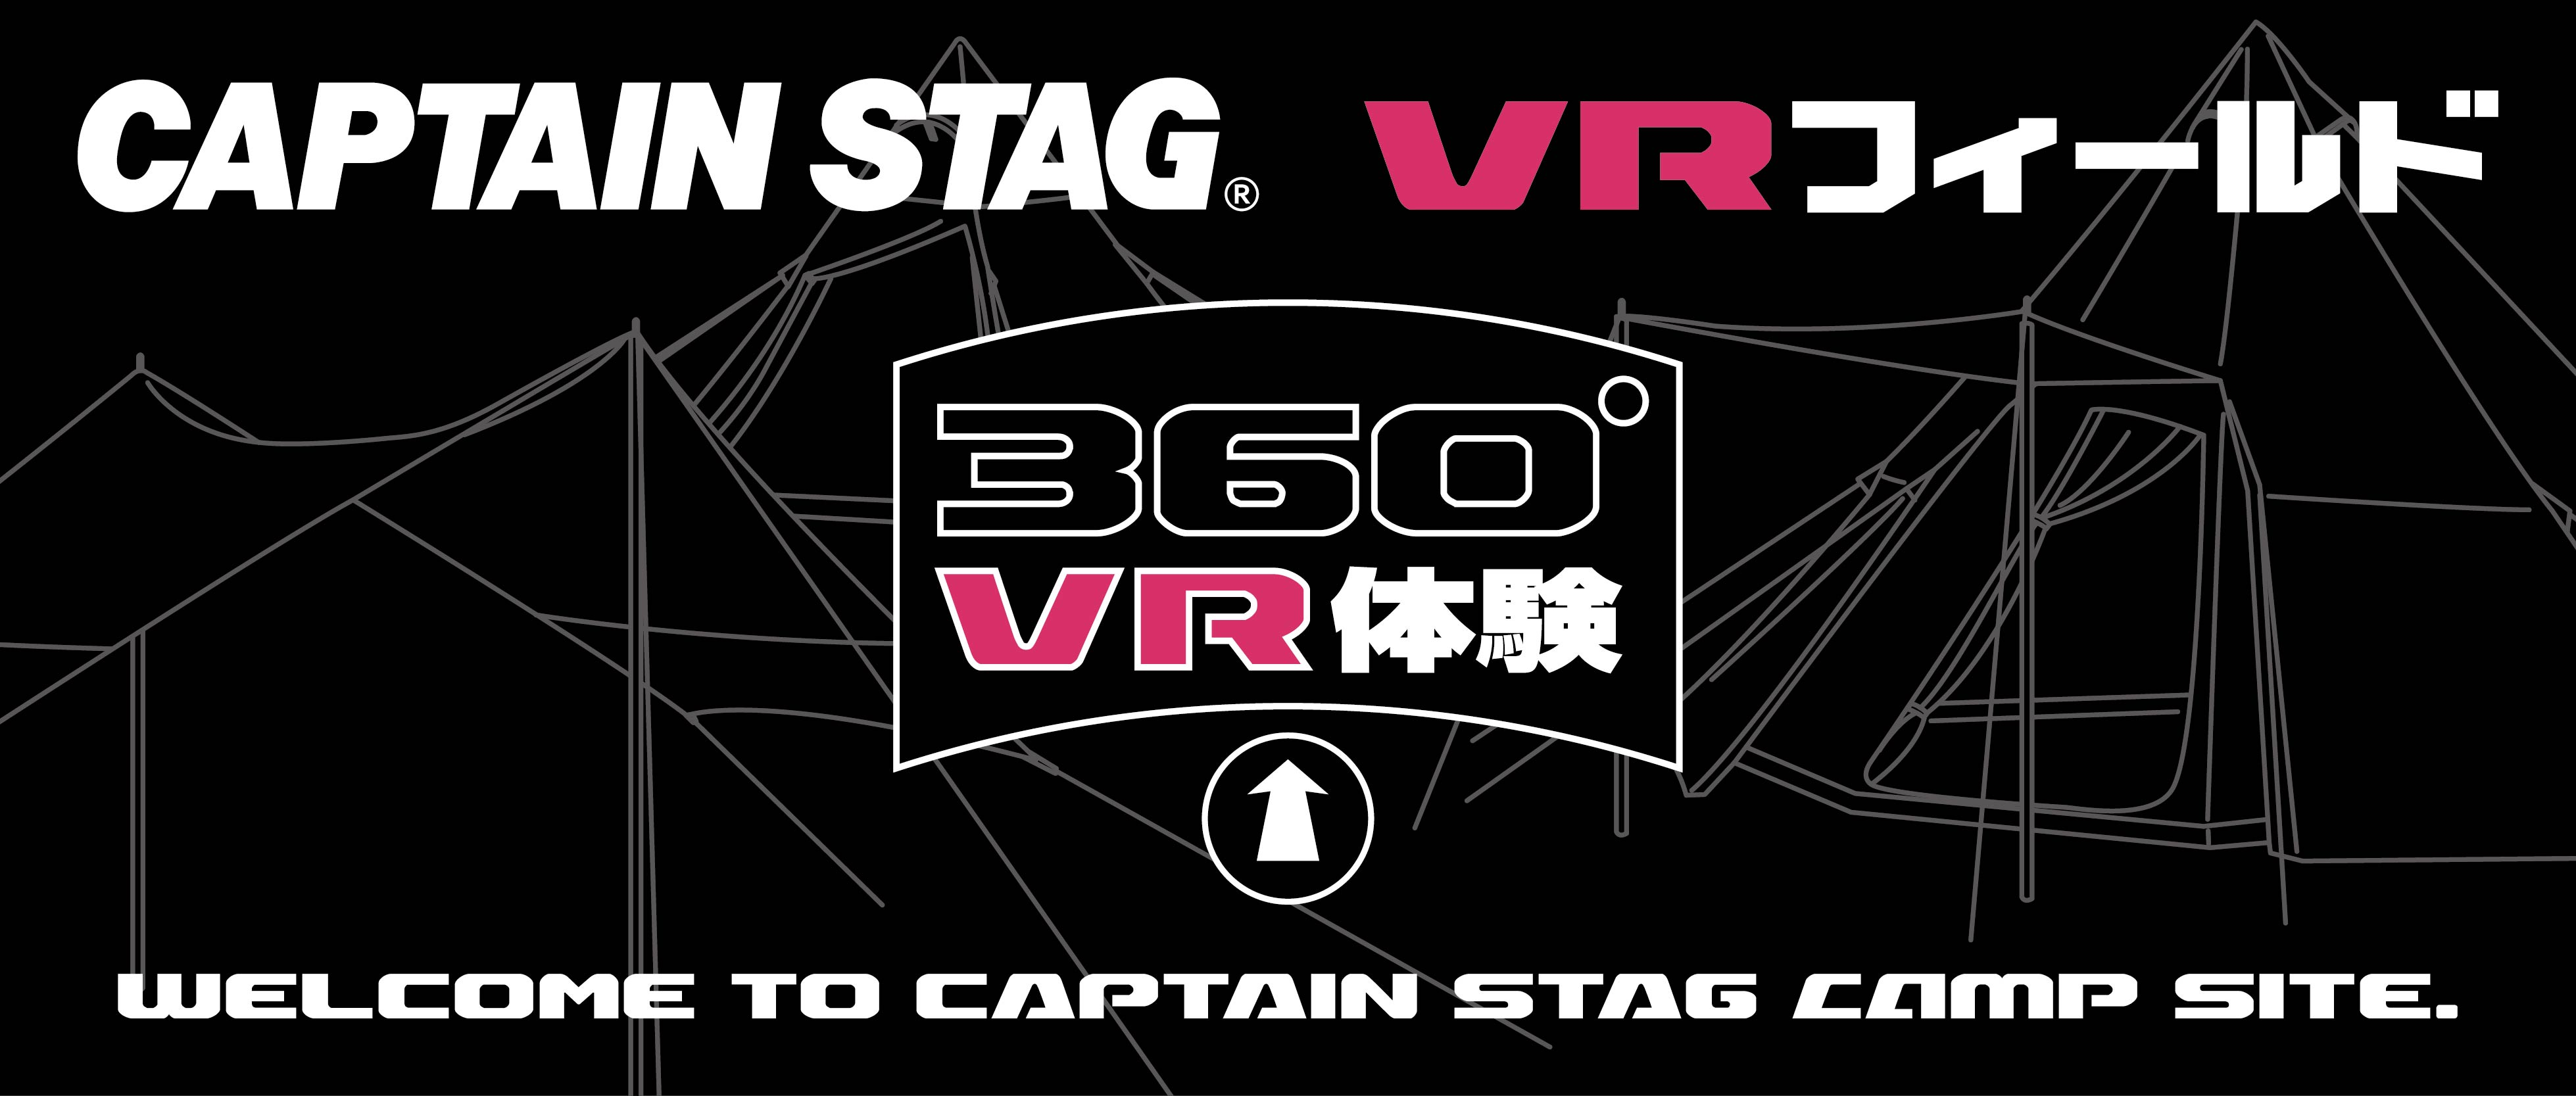 CAPTAIN STAG VRフィールド 360度VR体験